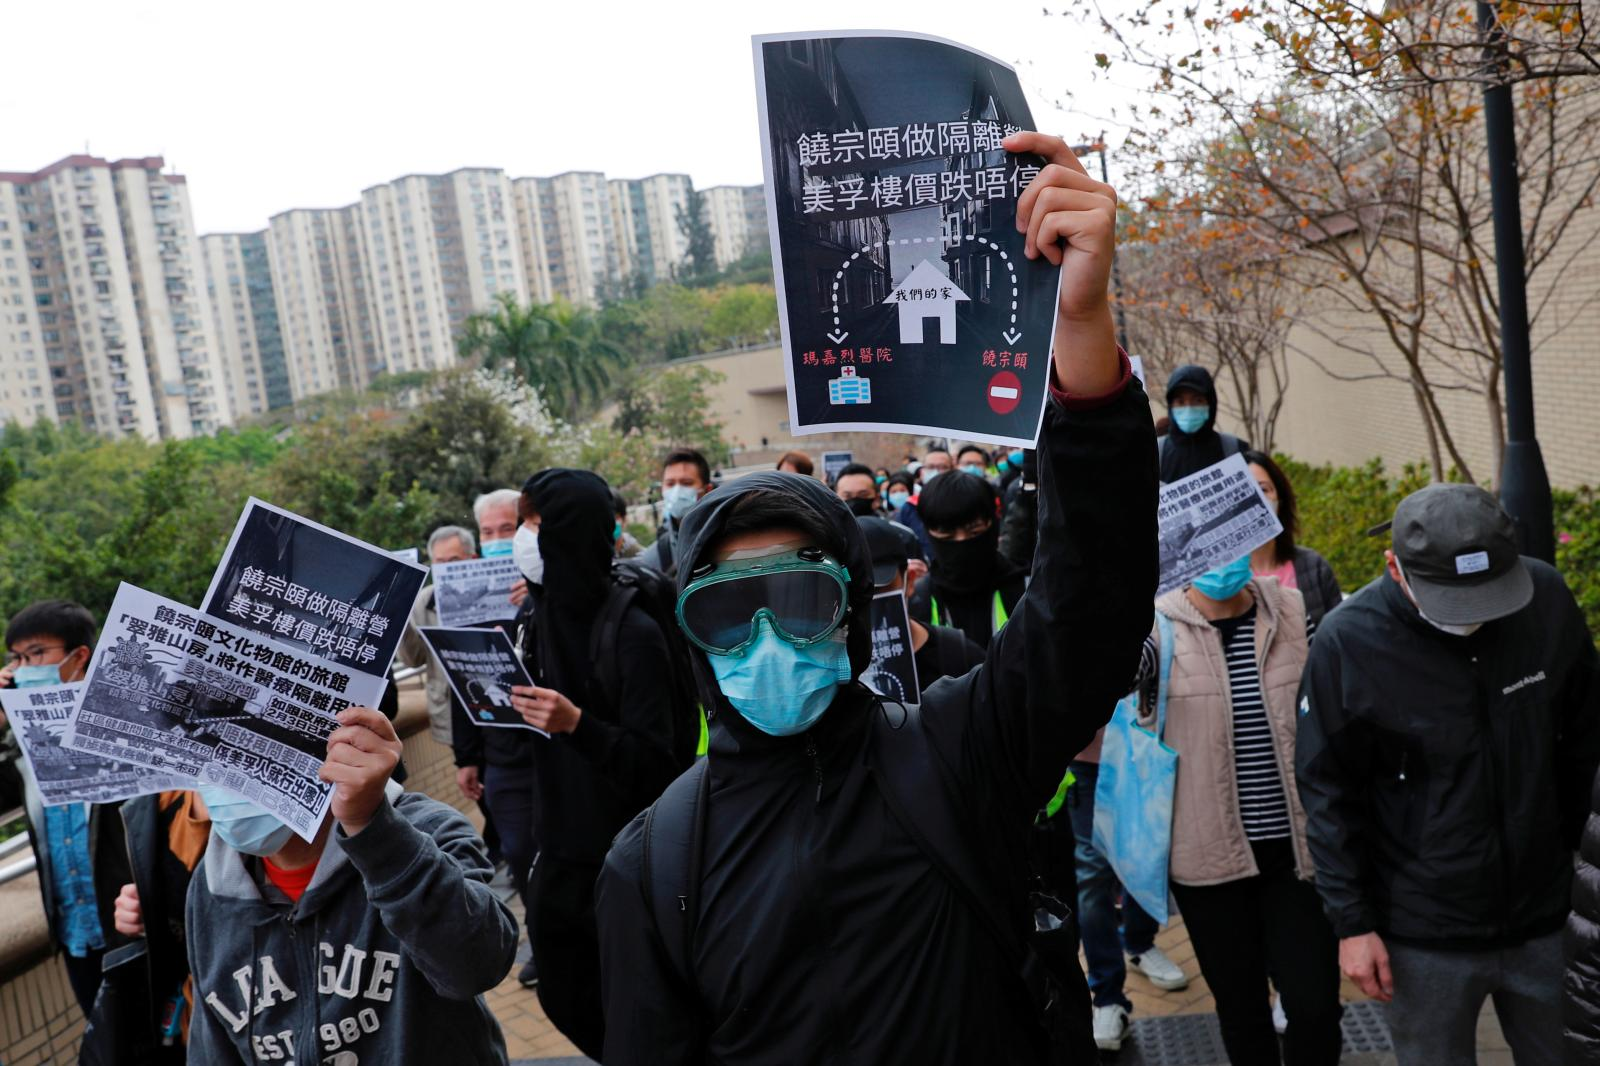 China Coronavirus is at Center of Hong Kong Protests